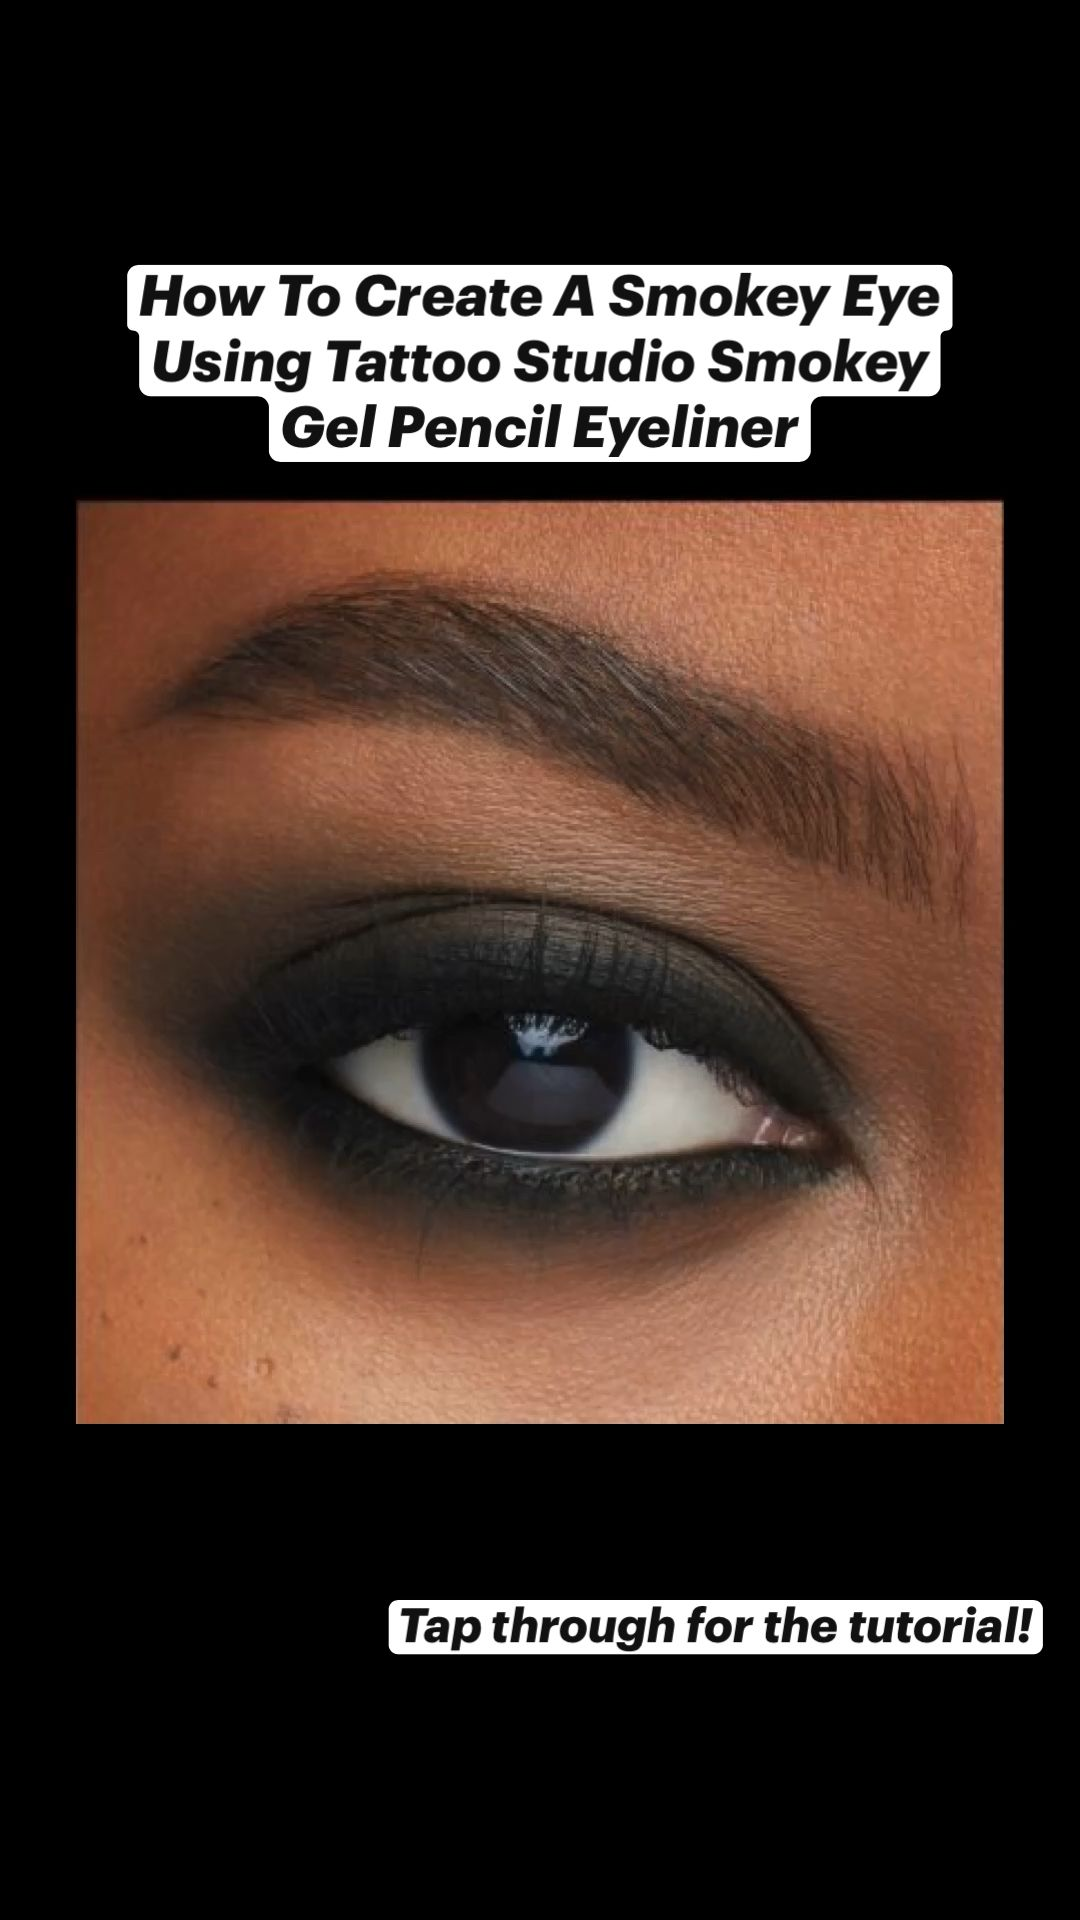 How to create a smokey eye with Tattoo Studio Smokey Gel Pencil Liner